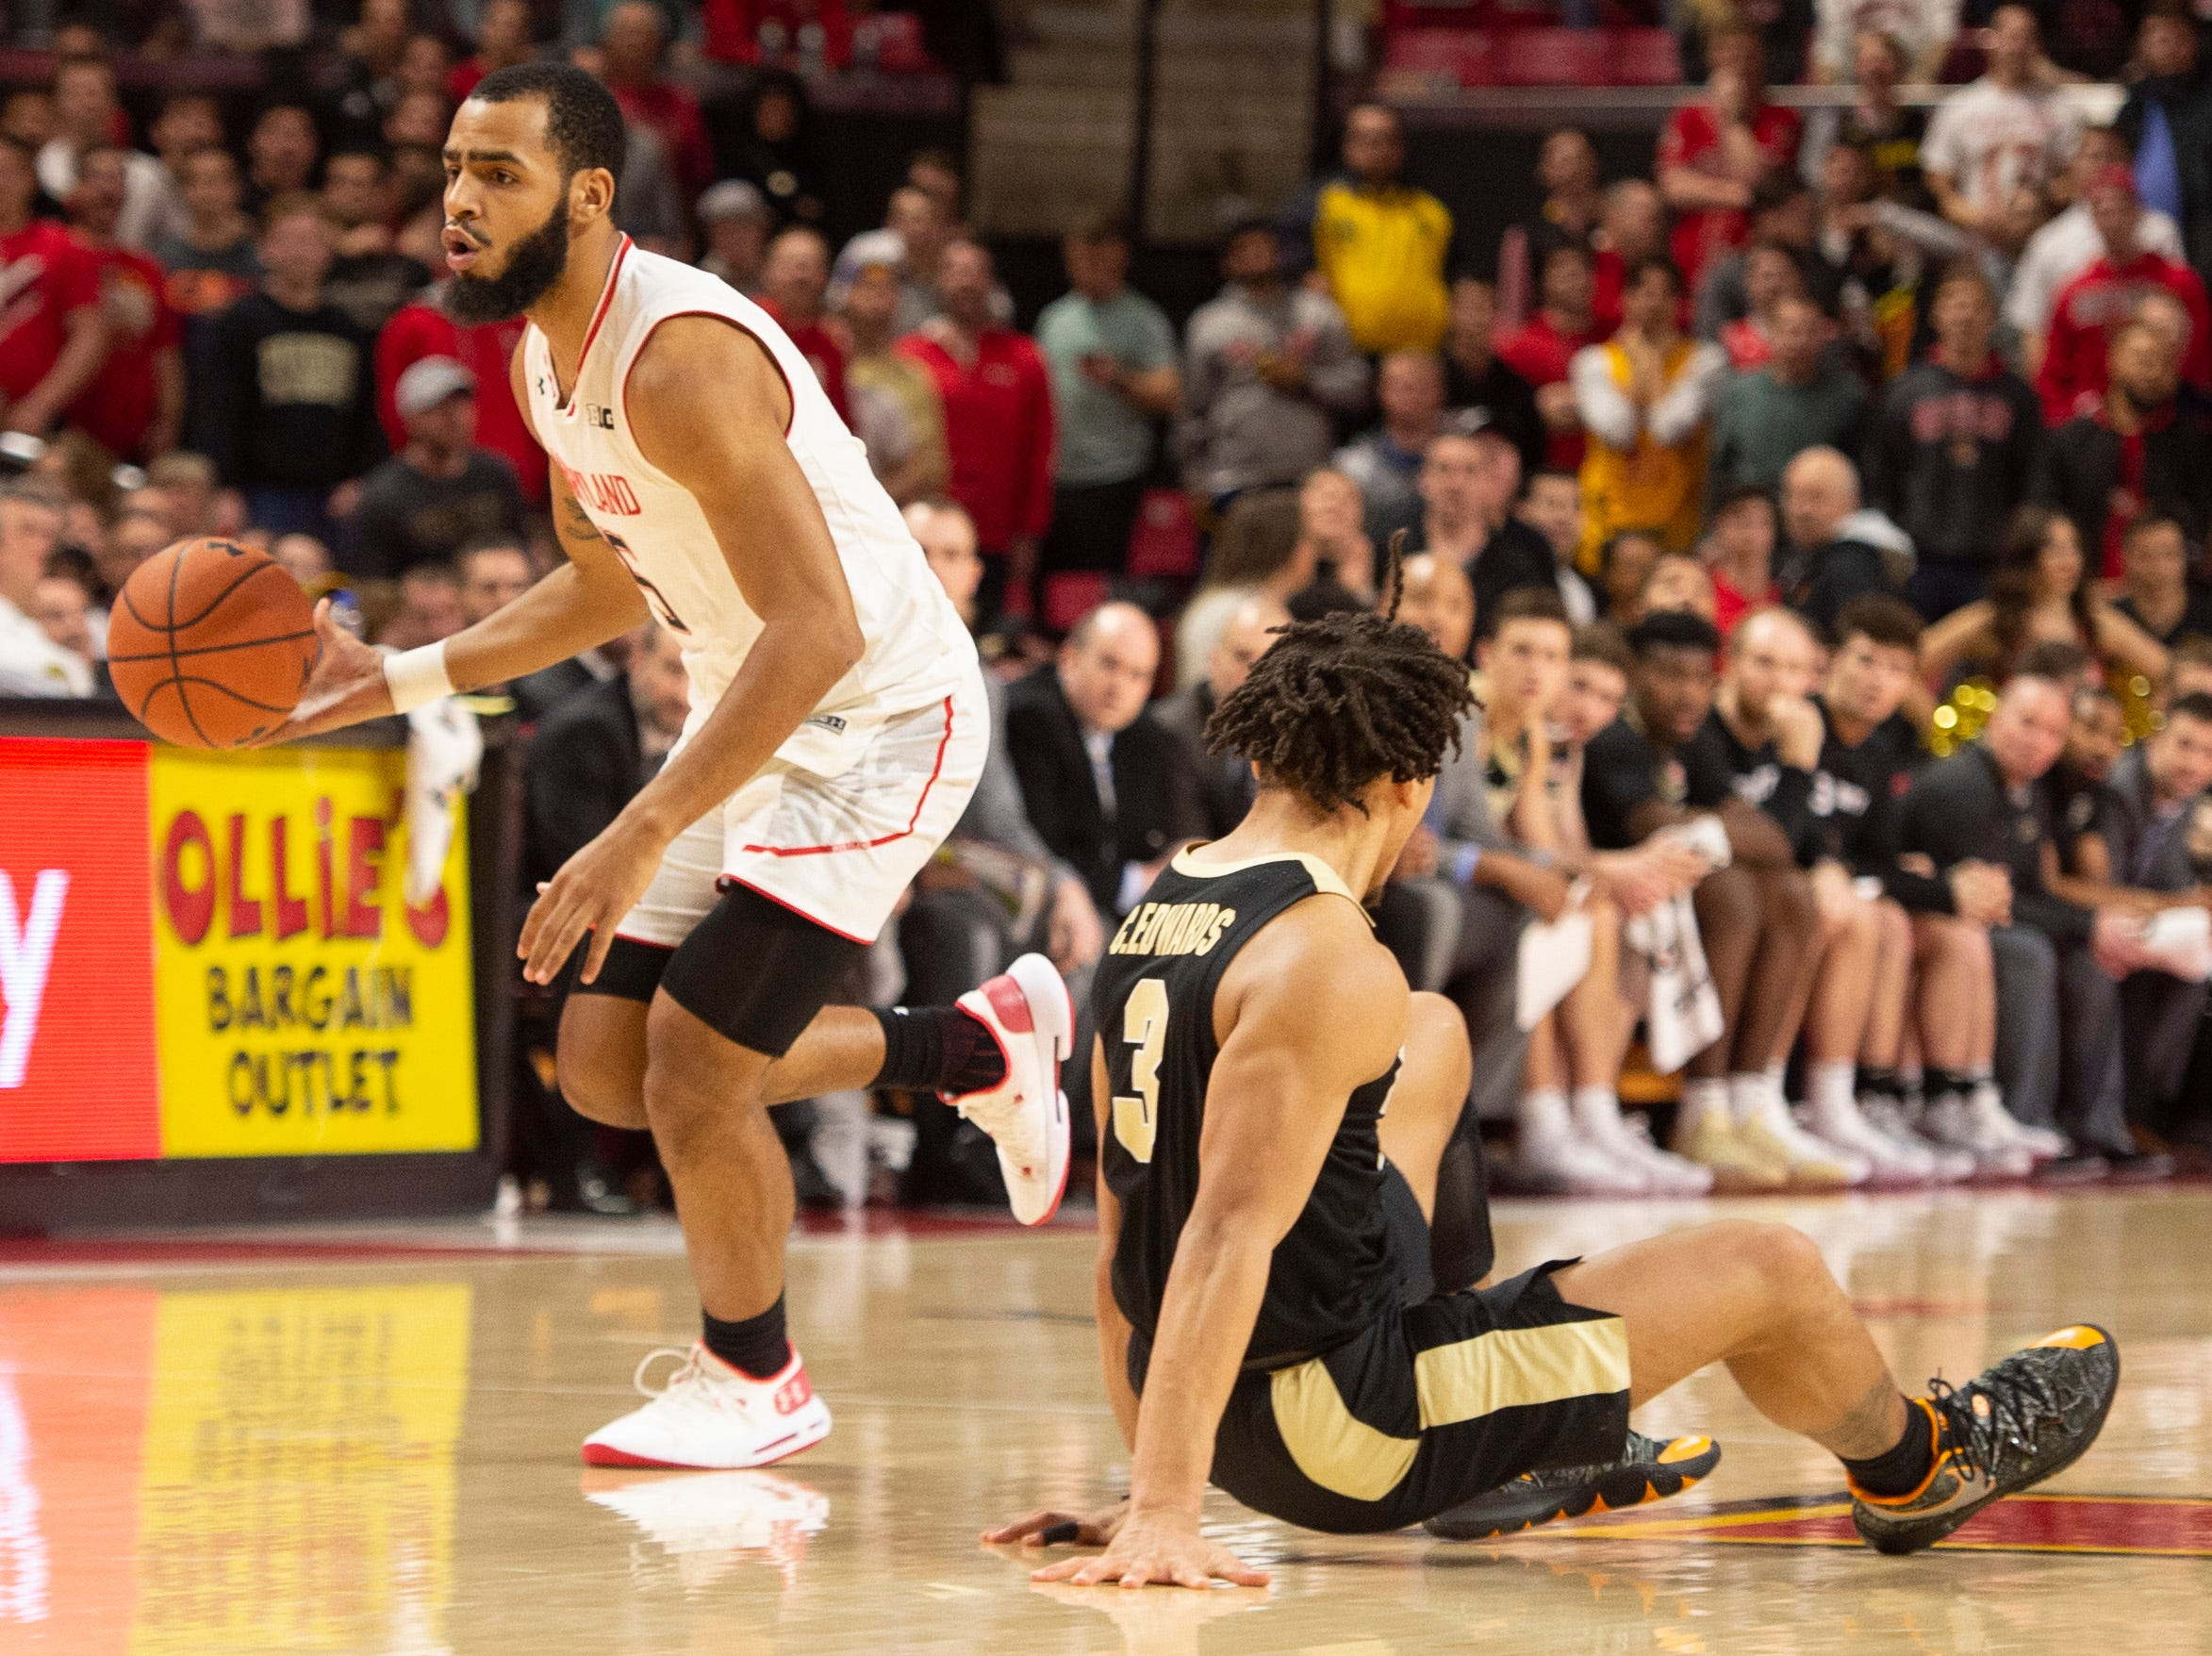 Feb 12, 2019; College Park, MD, USA; Maryland Terrapins guard Eric Ayala (5) dribbles past Purdue Boilermakers guard Carsen Edwards (3) during the second half at XFINITY Center. Mandatory Credit: Tommy Gilligan-USA TODAY Sports